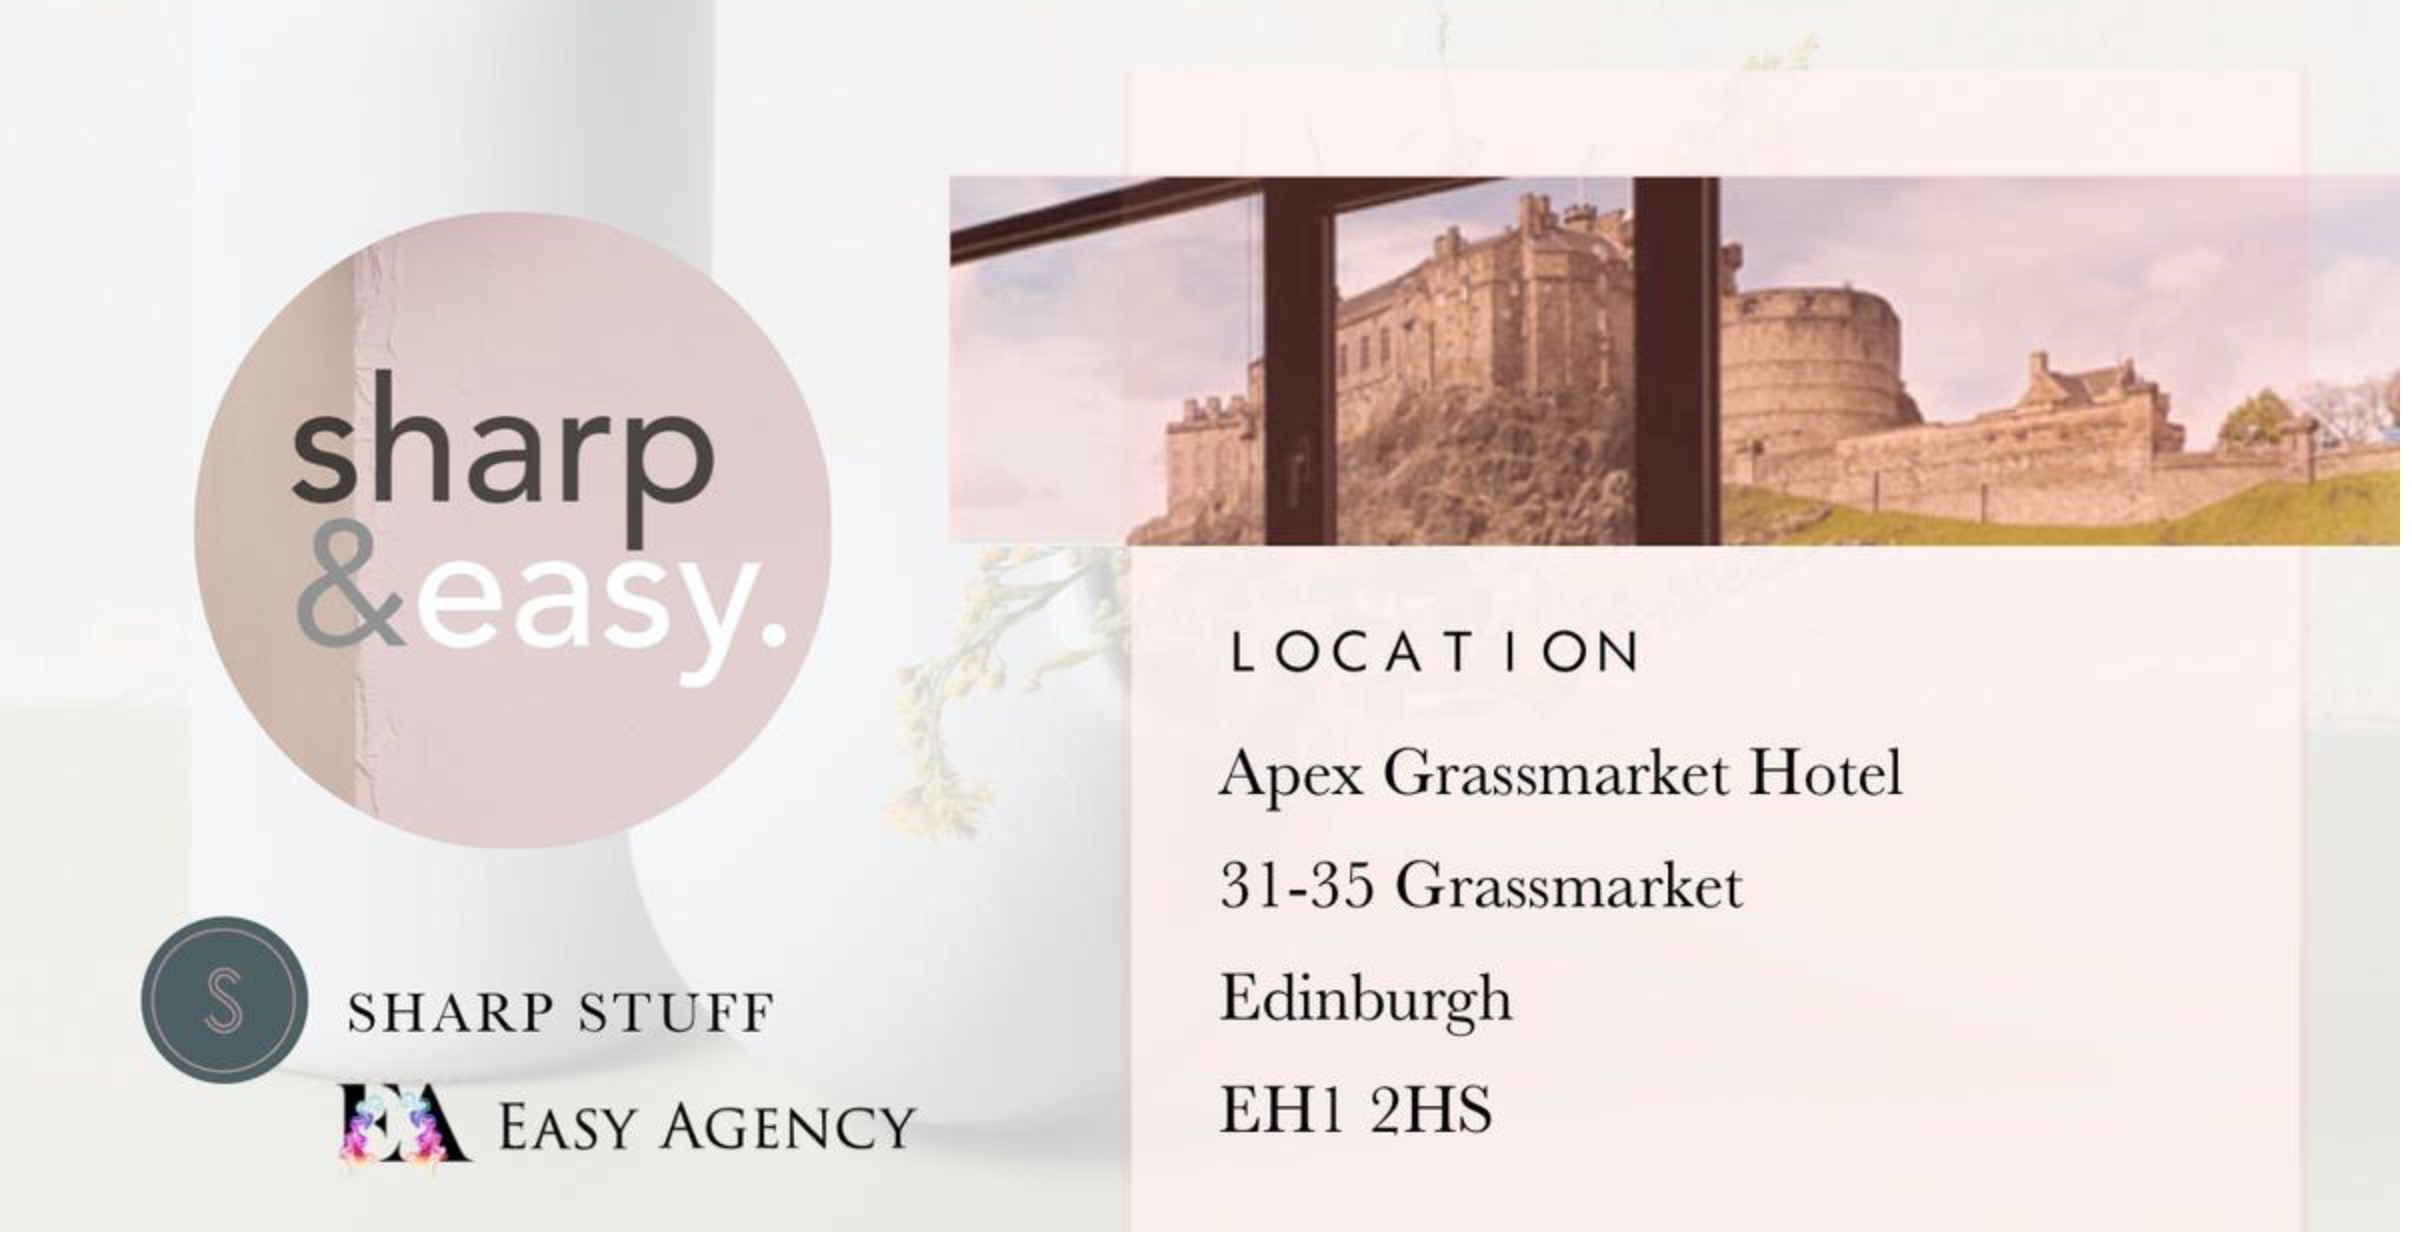 Above: The Sharp & Easy Pop-up showroom will be installed in Edinburgh's Apex Grassmarket hotel, which has easy parking as well as a great view of the castle.